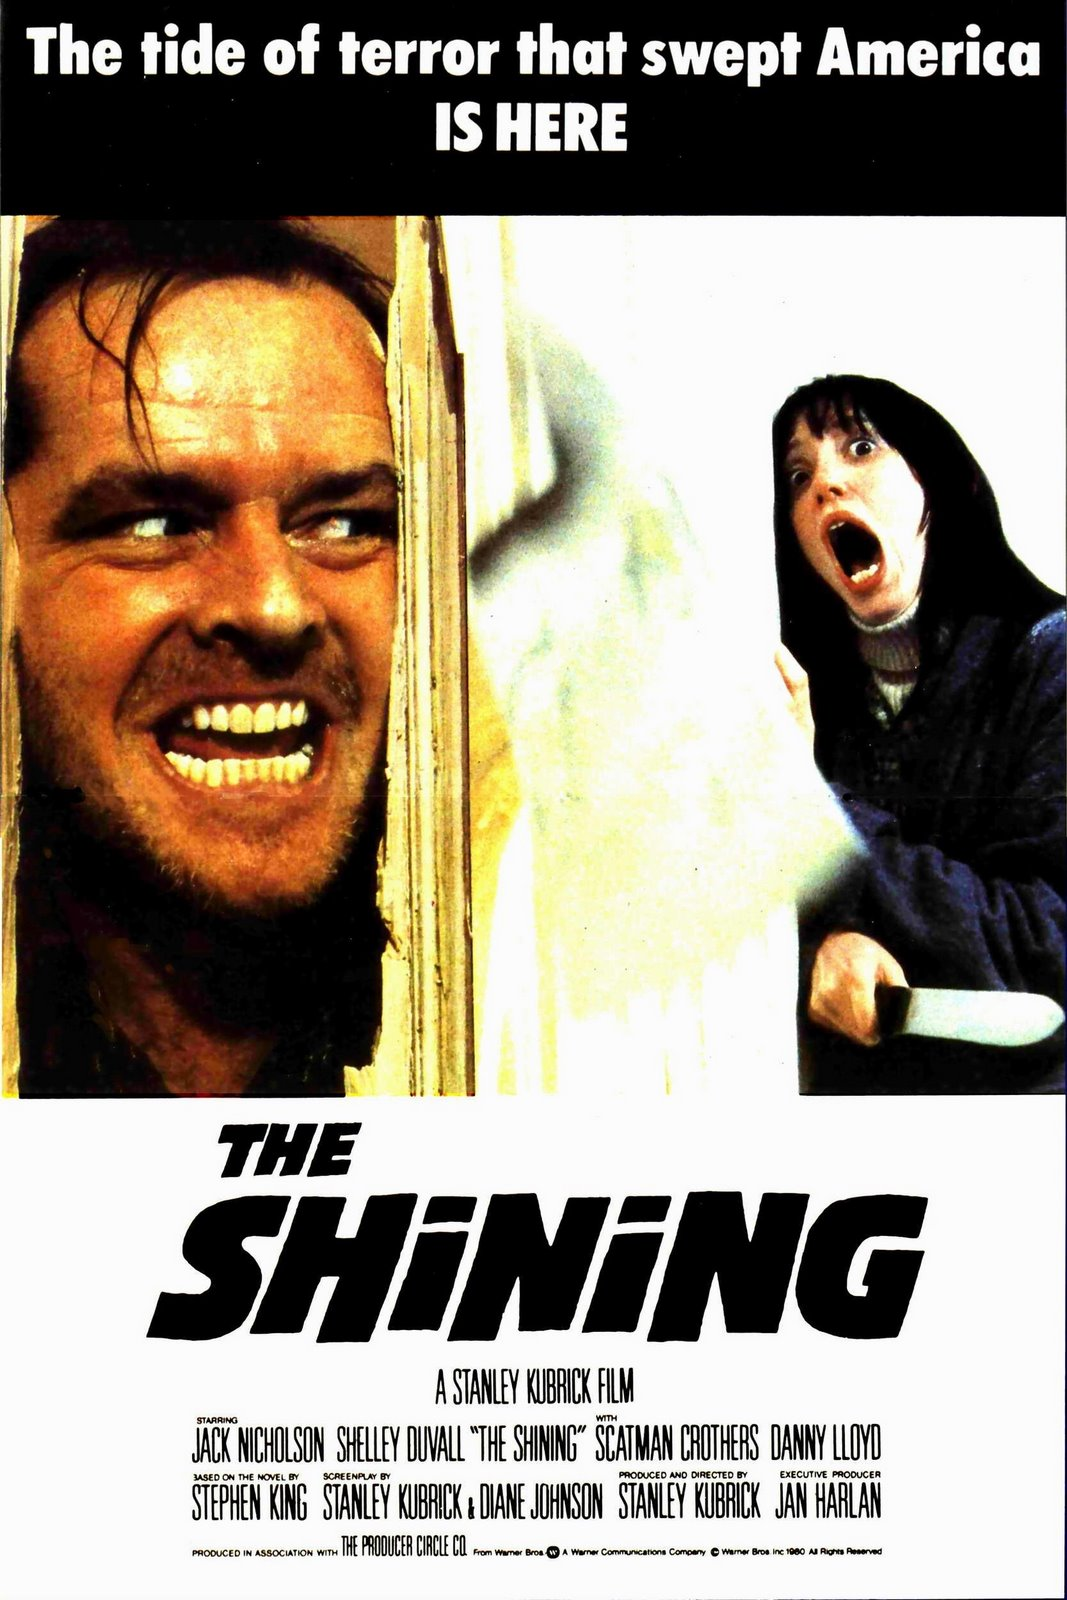 the shining poster - Interview - Film Director Matthew Leutwyler